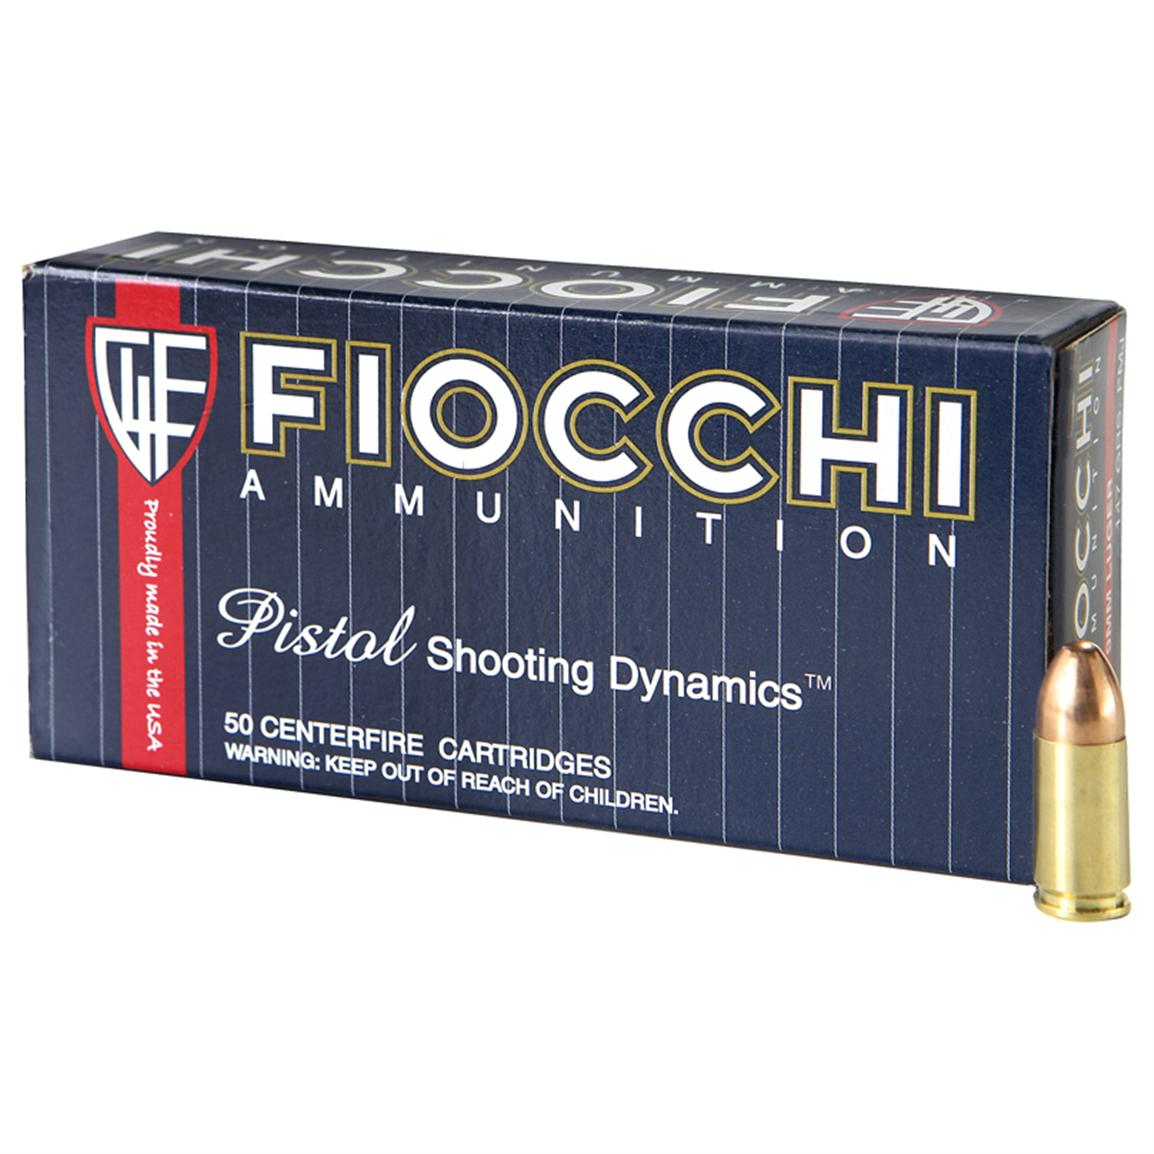 Fiocchi, 9mm, FMJ, 147 Grain, 1,000 Rounds